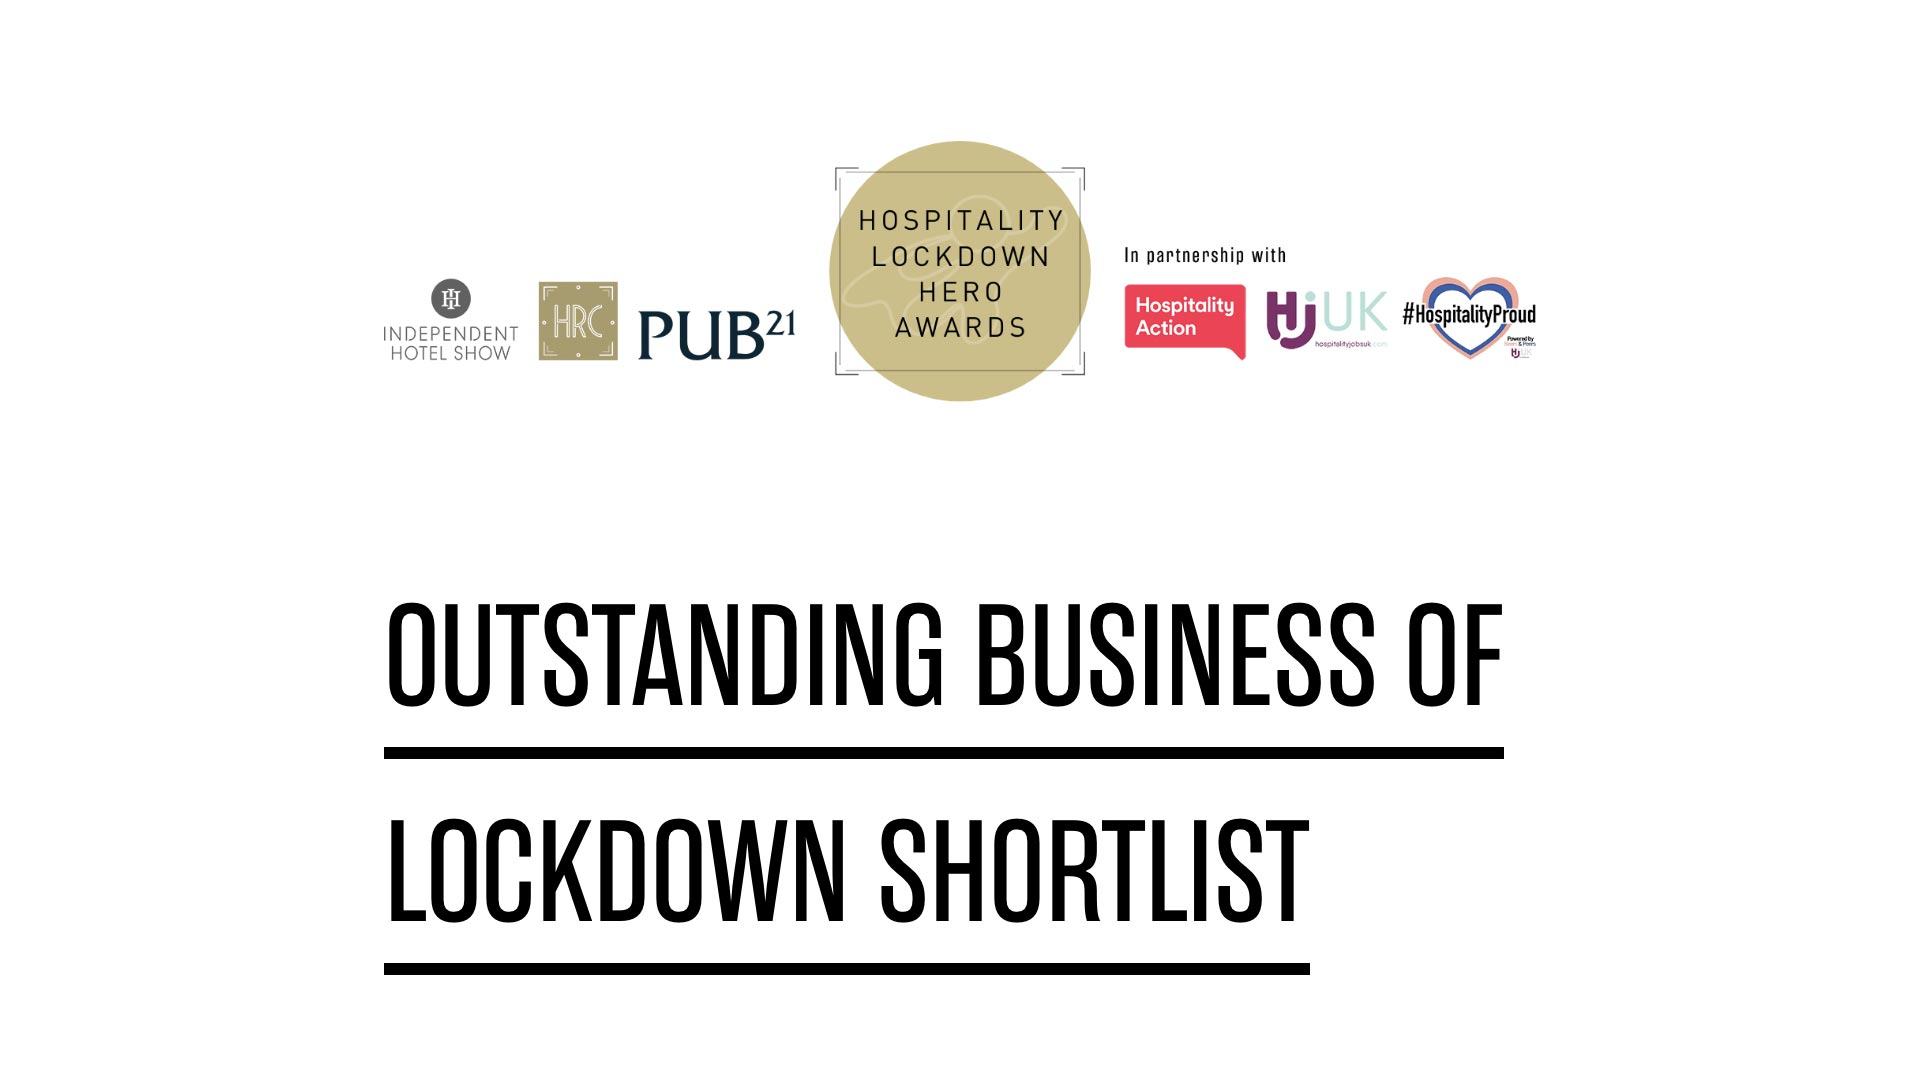 The McCarthy-Dixon Foundation are proud to have been shortlisted as 'Outstanding Business of Lockdown'